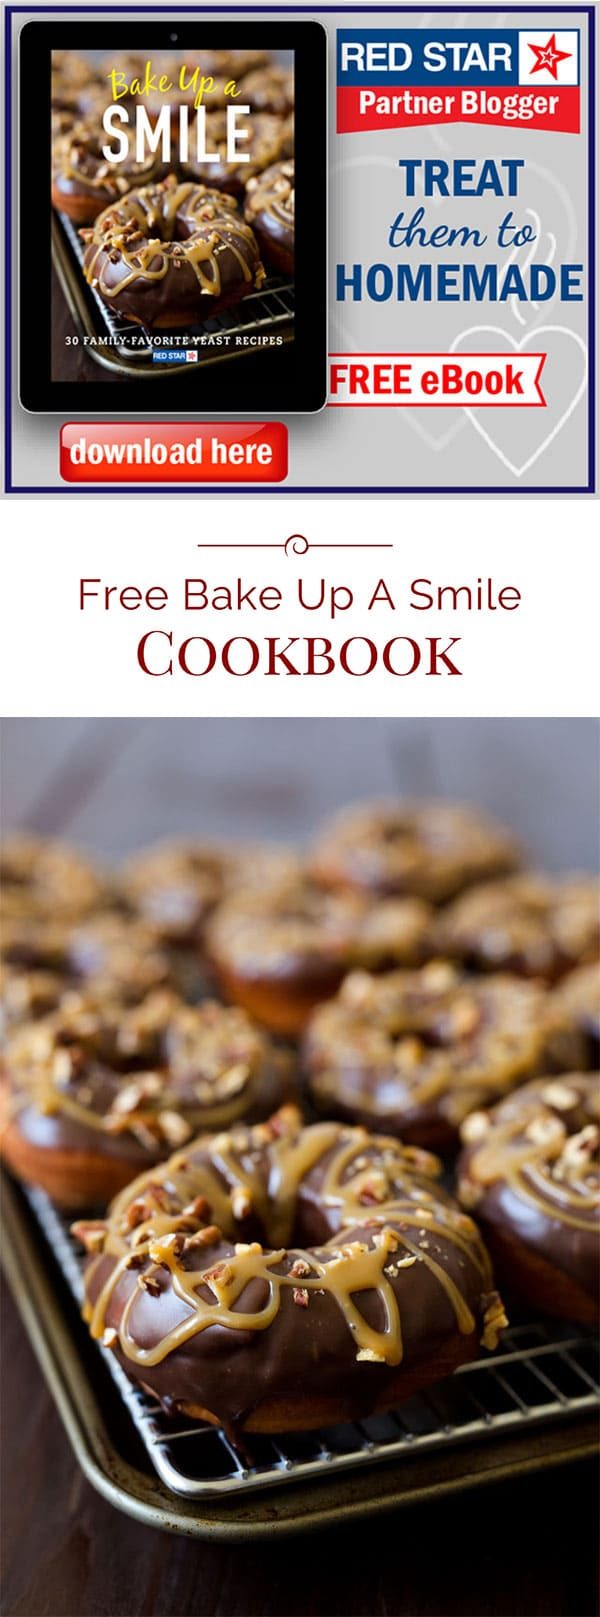 Red Star Yeast has created a cookbook, Bake Up A Smile. The cookbook is filled with 30 yeast recipes created by Red Star Yeast partner bloggers, like me!